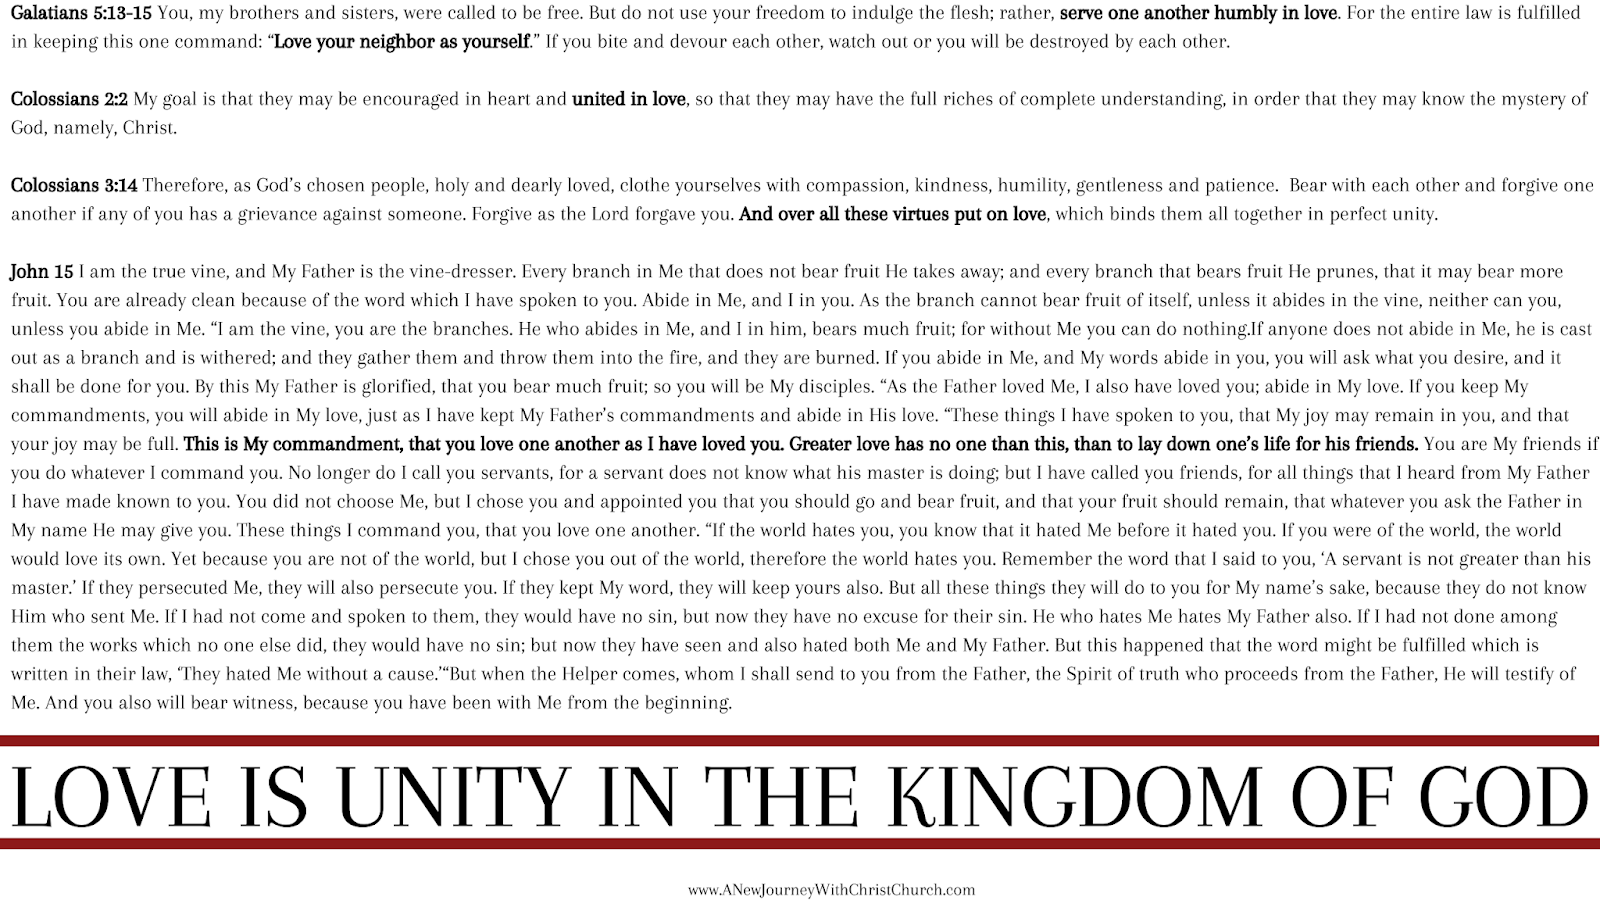 Unity Series II of III - Love is Unity in the Kingdom of God